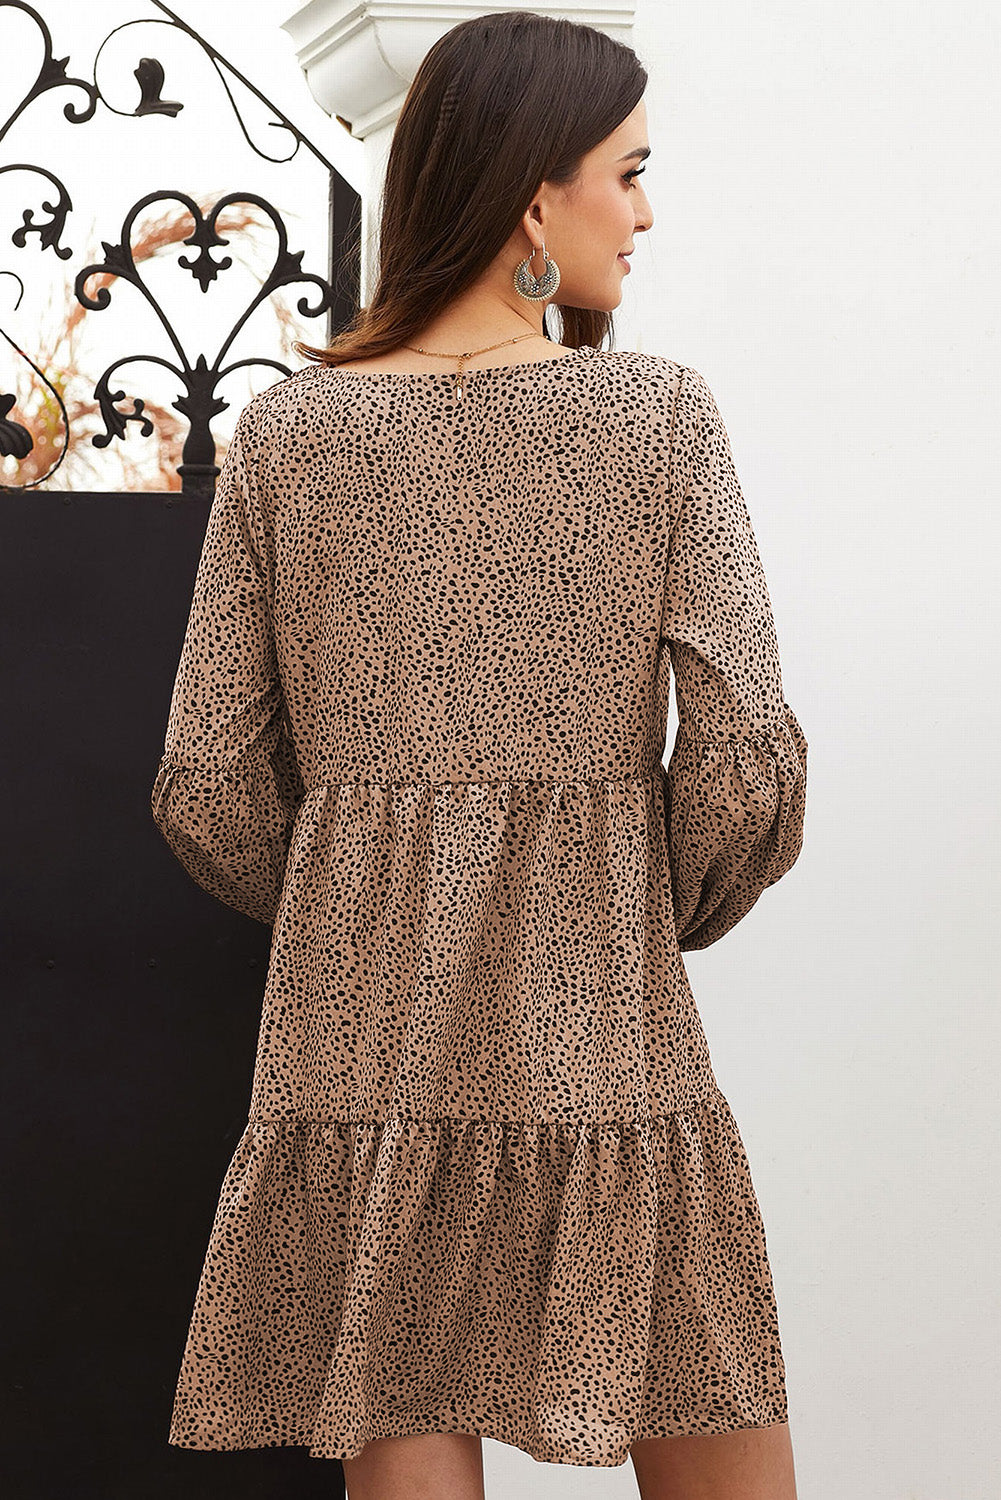 Brown Leopard Ruffle V-Neck Flowy Loose Tunic Dress Mini Dresses Discount Designer Fashion Clothes Shoes Bags Women Men Kids Children Black Owned Business